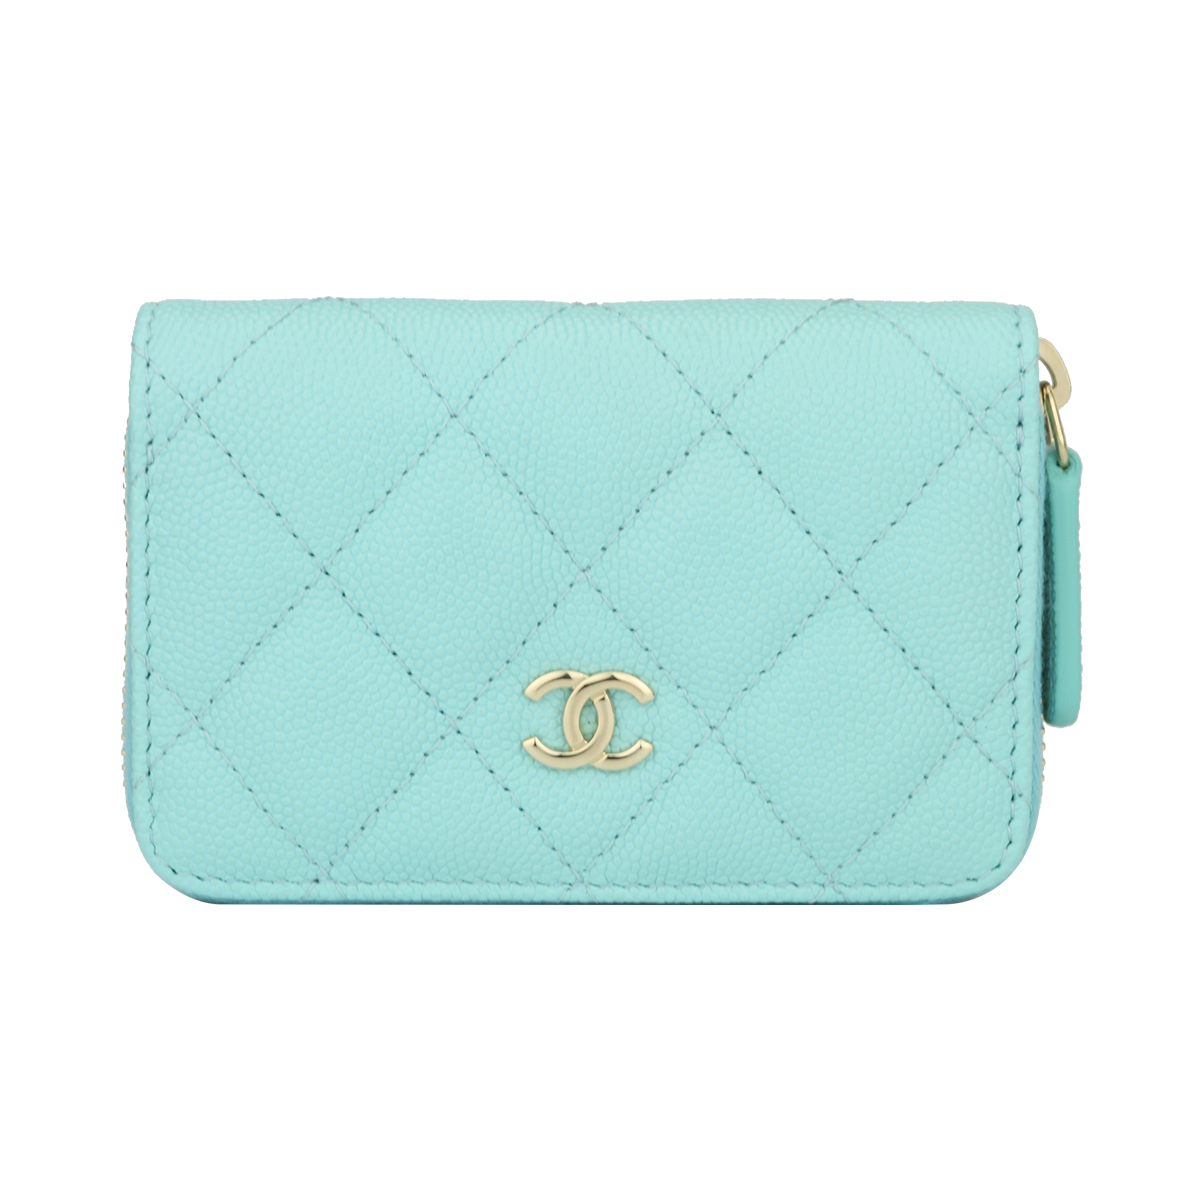 cf6aef7704fd Home/Chanel/CHANEL Small Coin Purse Tiffany Blue Caviar Light Gold Hardware  2018. ; 